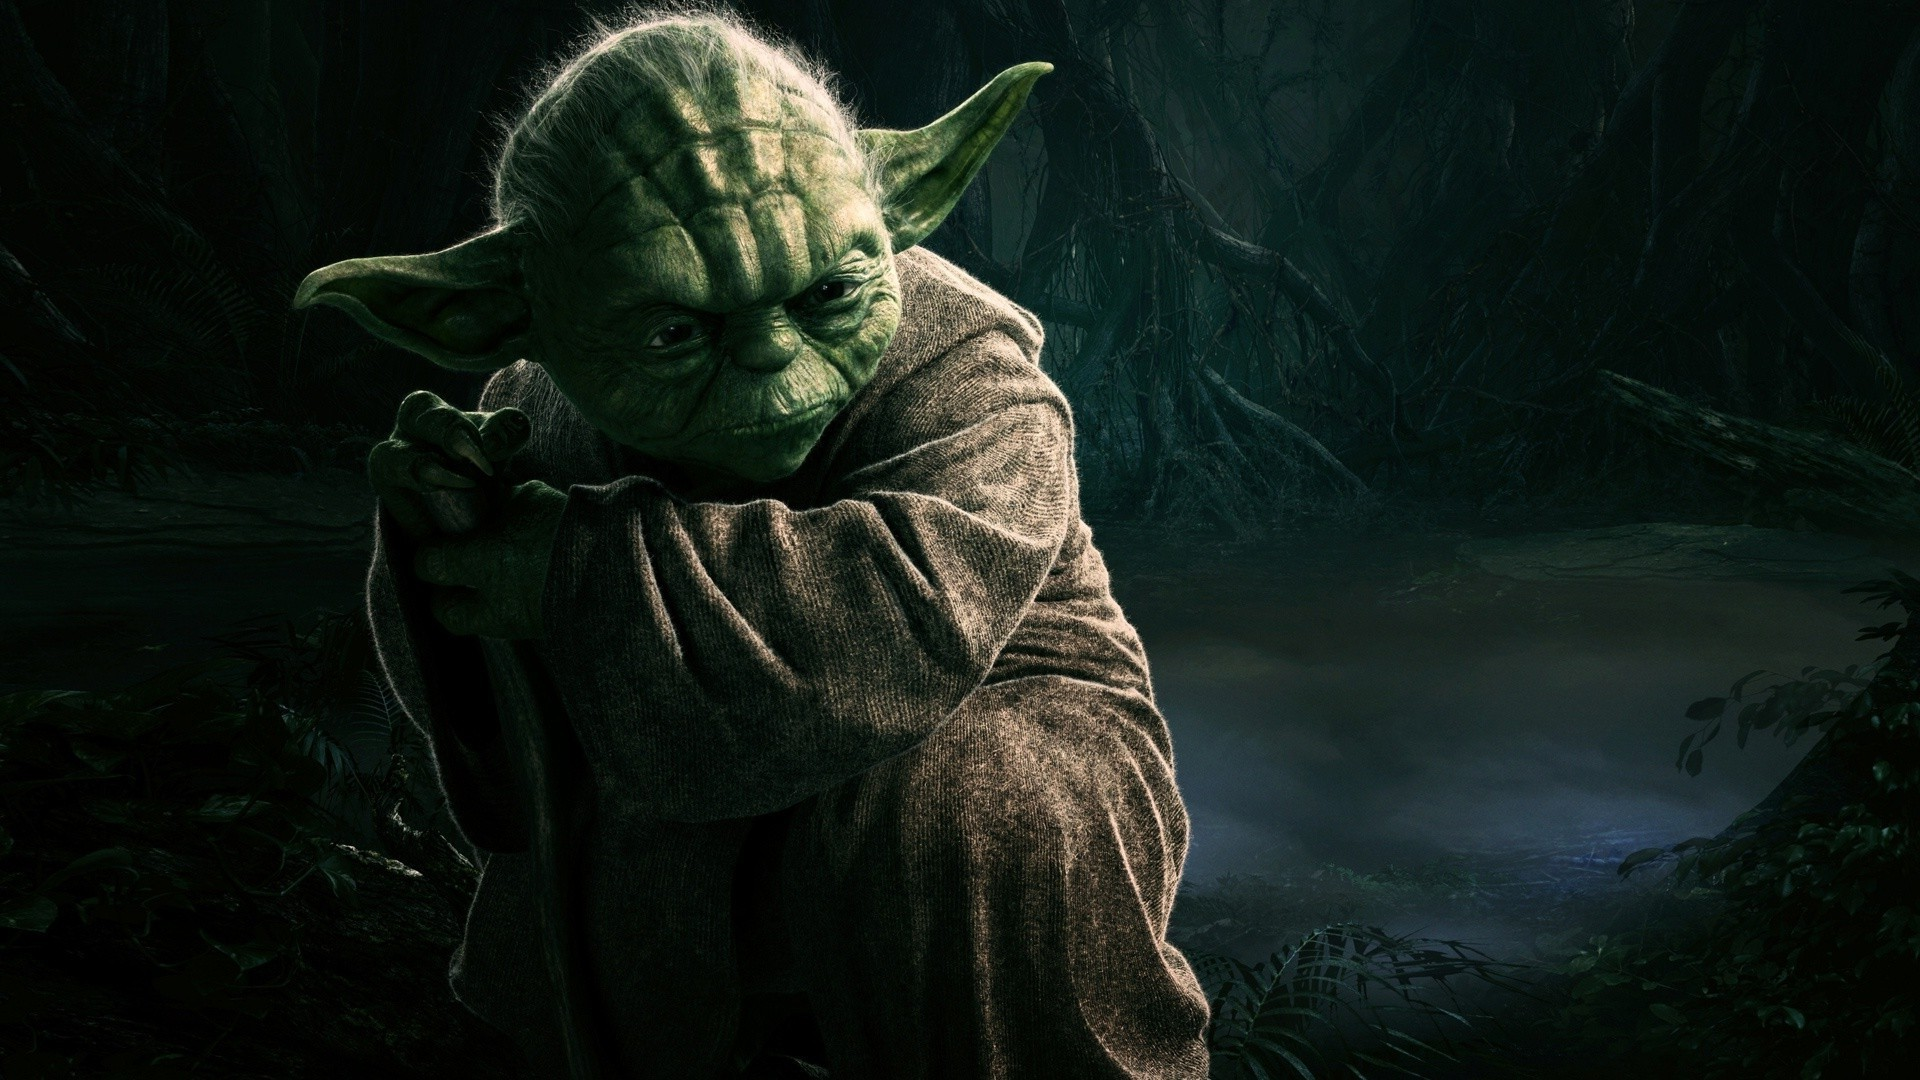 … fiction wallpaper hd star wars jedi wallpapers high quality at …